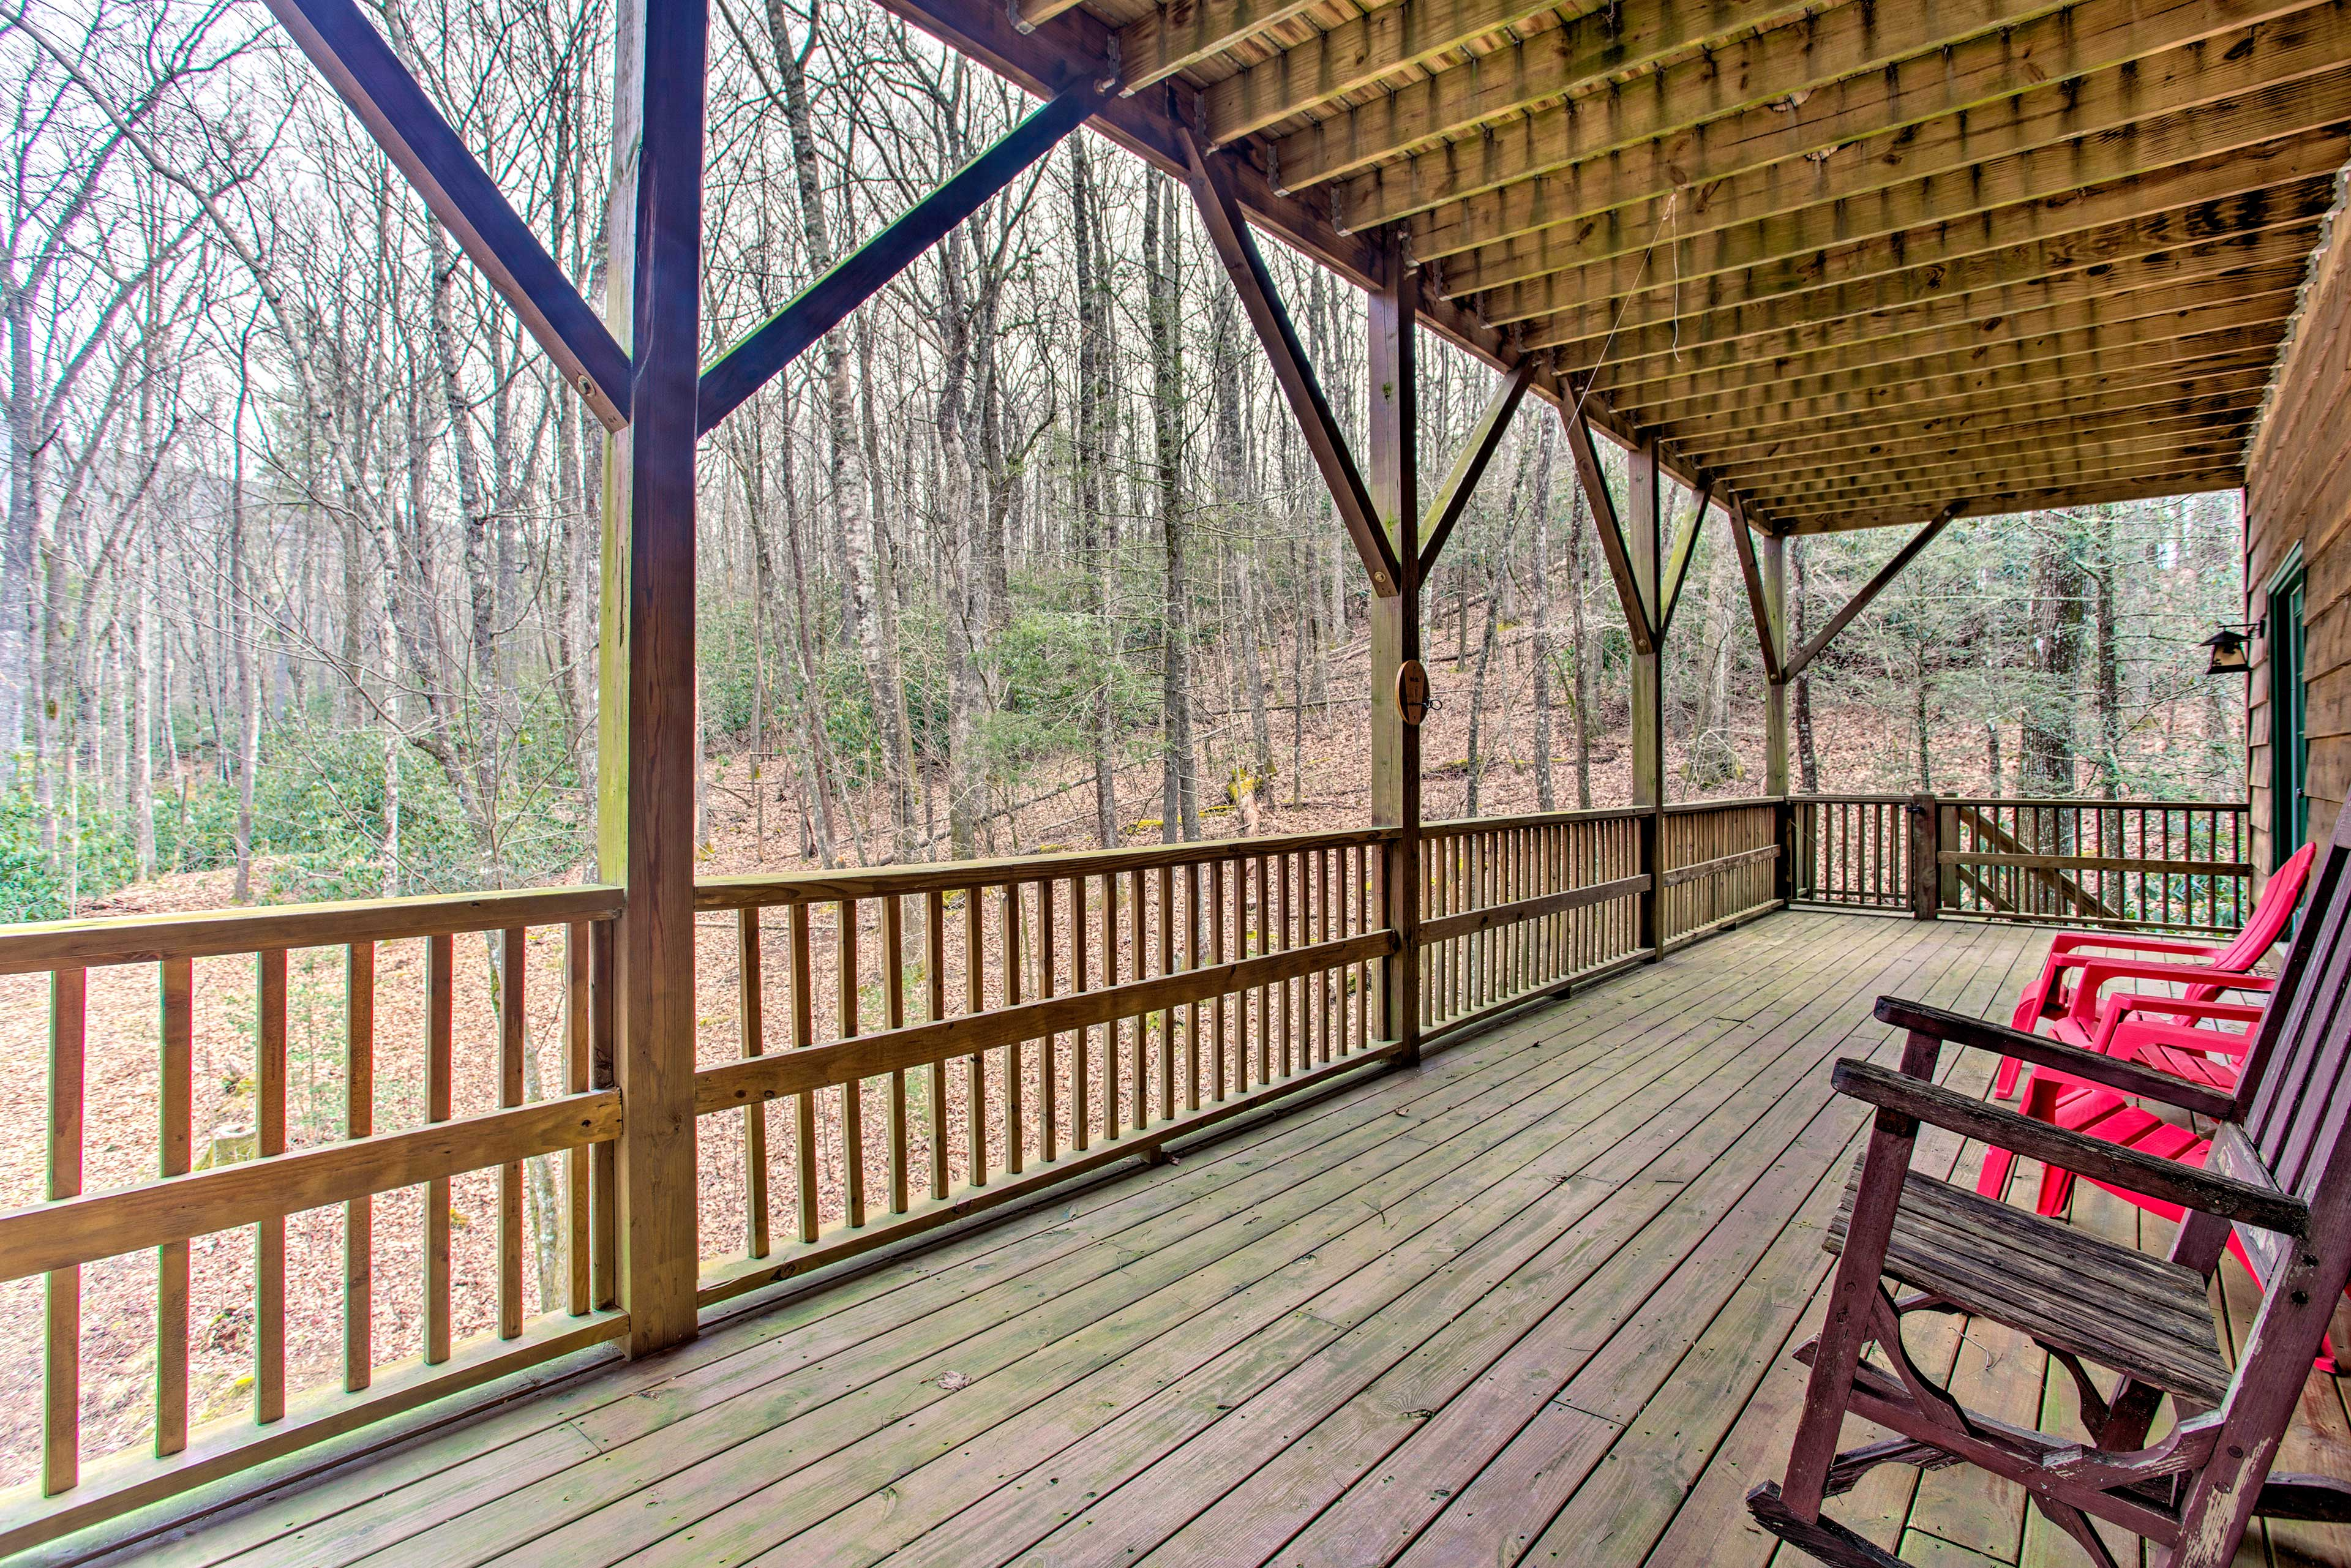 Admire the forest and mountain views from this expansive deck.